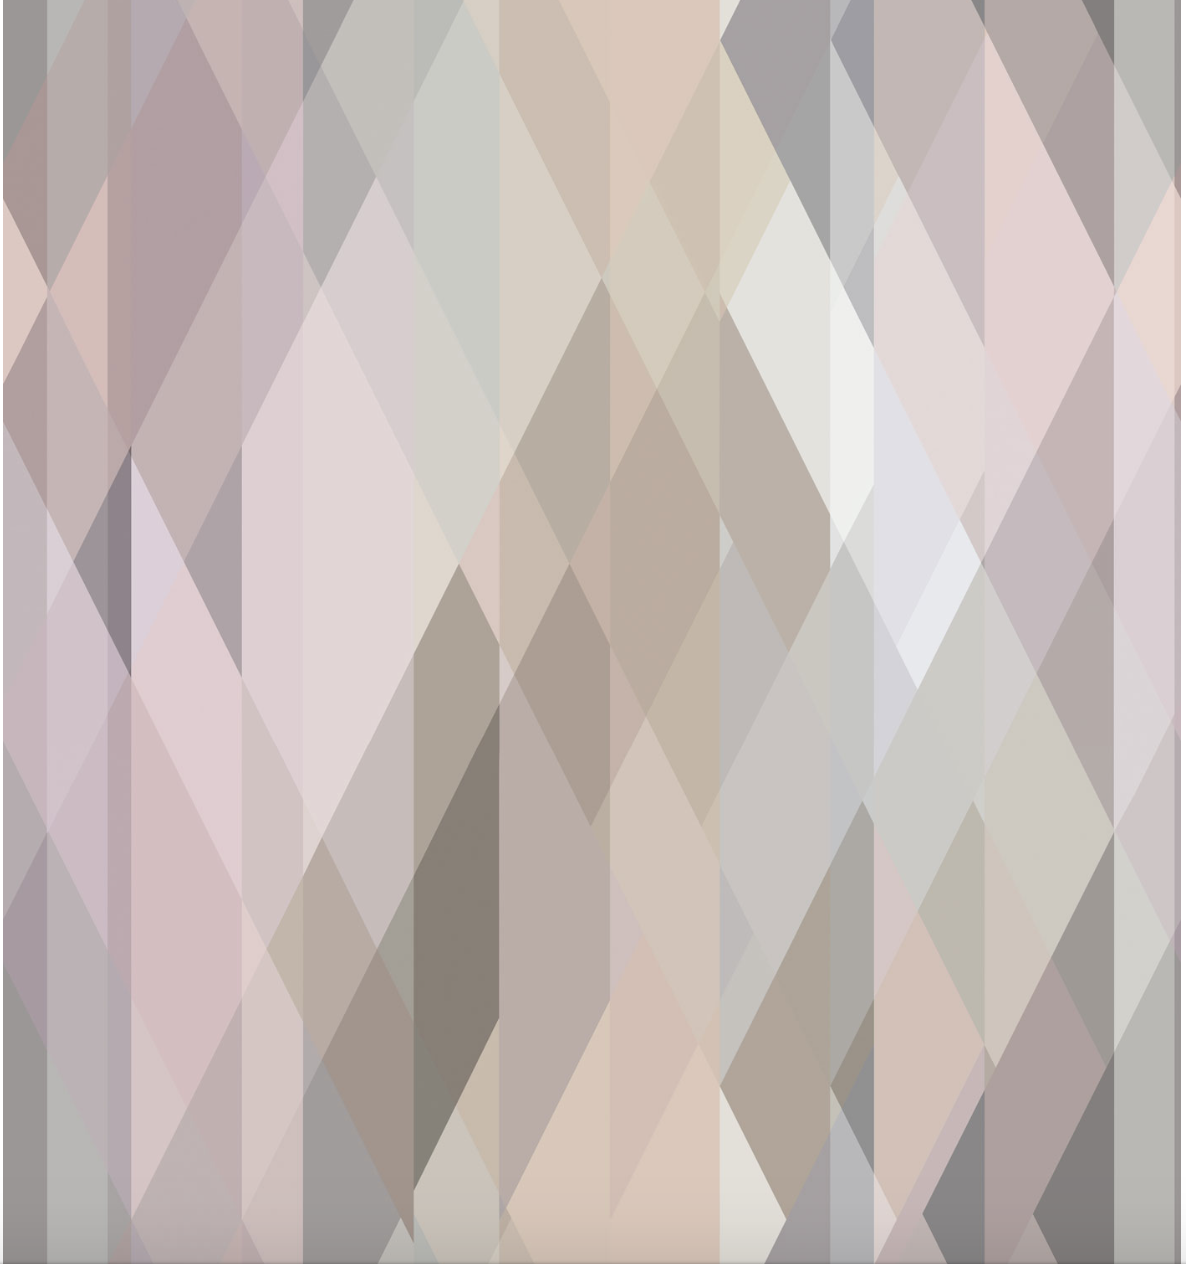 The New Neutrals: Cole & Son's classic 'Prism' design updated in an elegantly understated Pastel palette, with shards of alabaster pink, taupe, silvered sage and lilac.